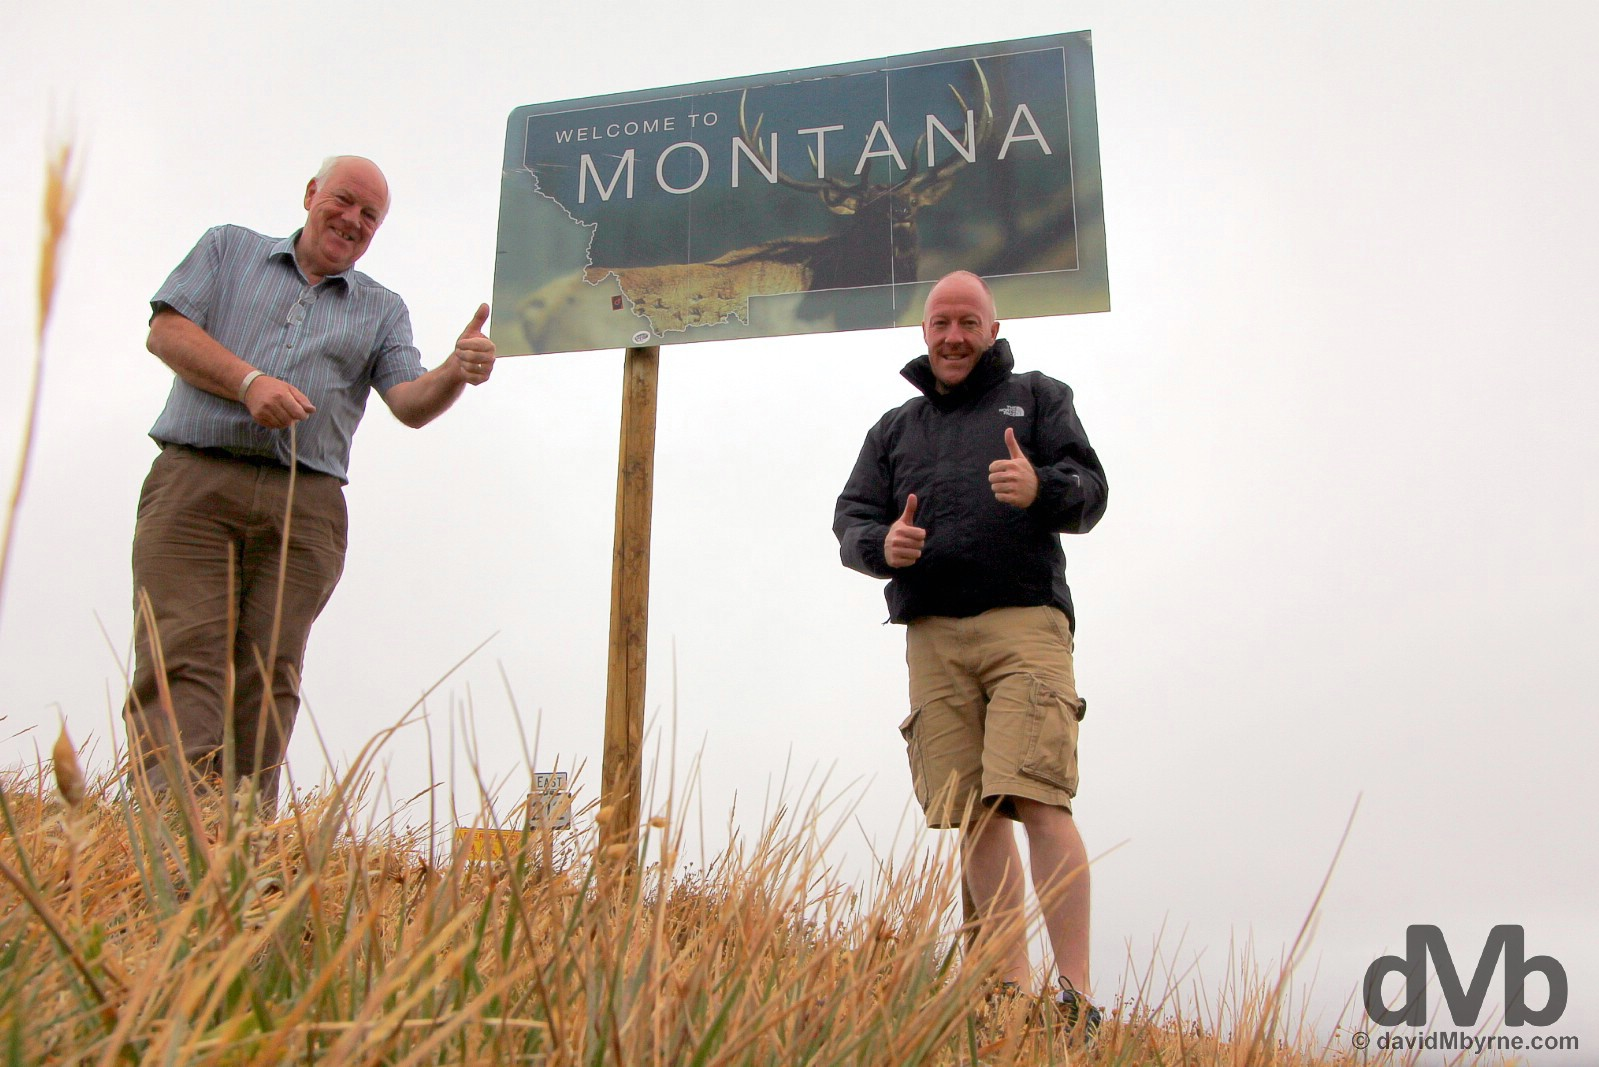 At the Montana/Wyoming state line on U.S. Route 212, the All-American Beartooth Highway, USA. September 4, 2016.